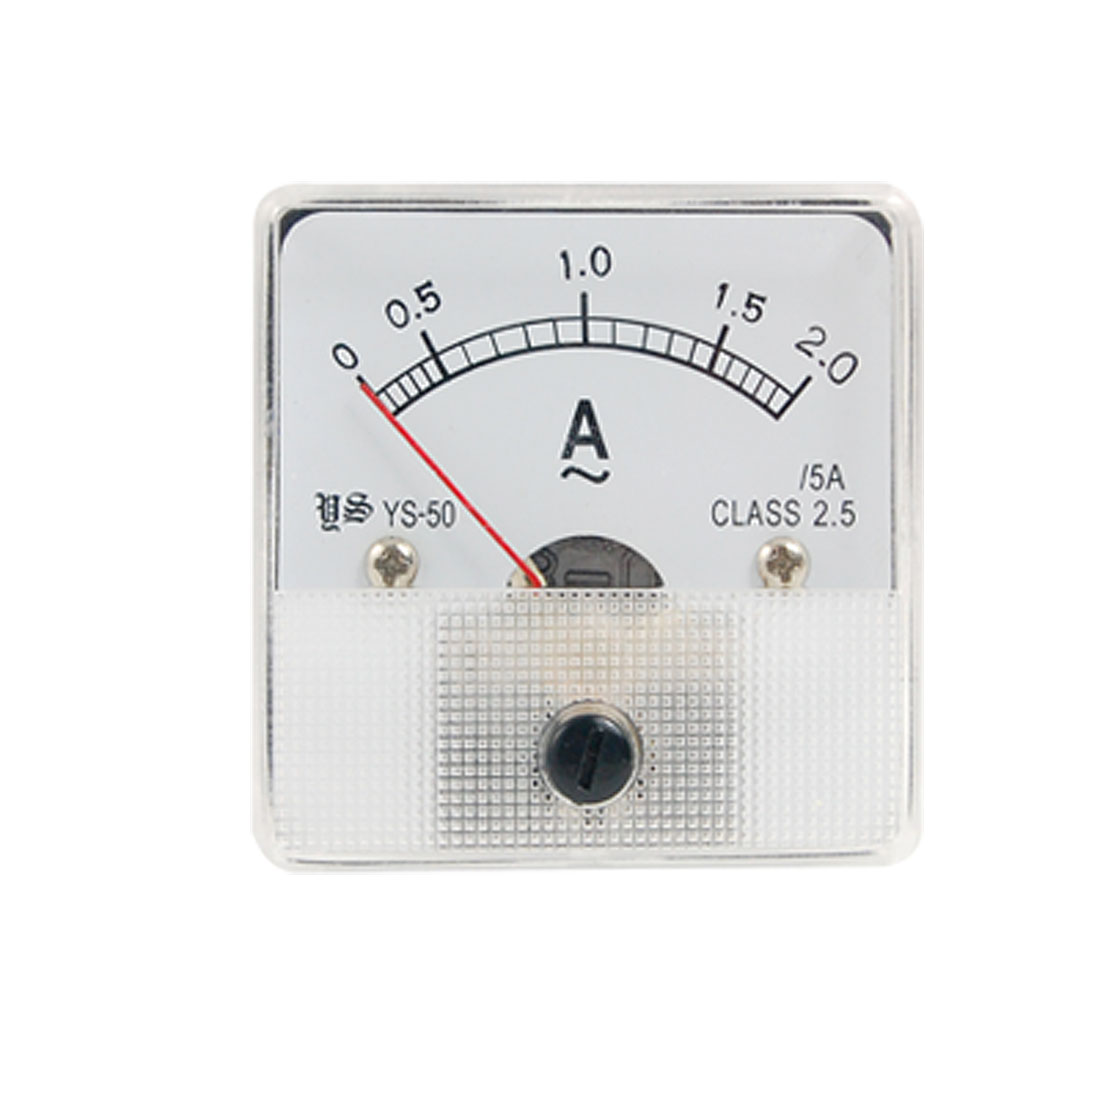 AC 0-2A Class 2.5 Accuracy Squared Panel Analog Ampere Meter Ammeter YS-50